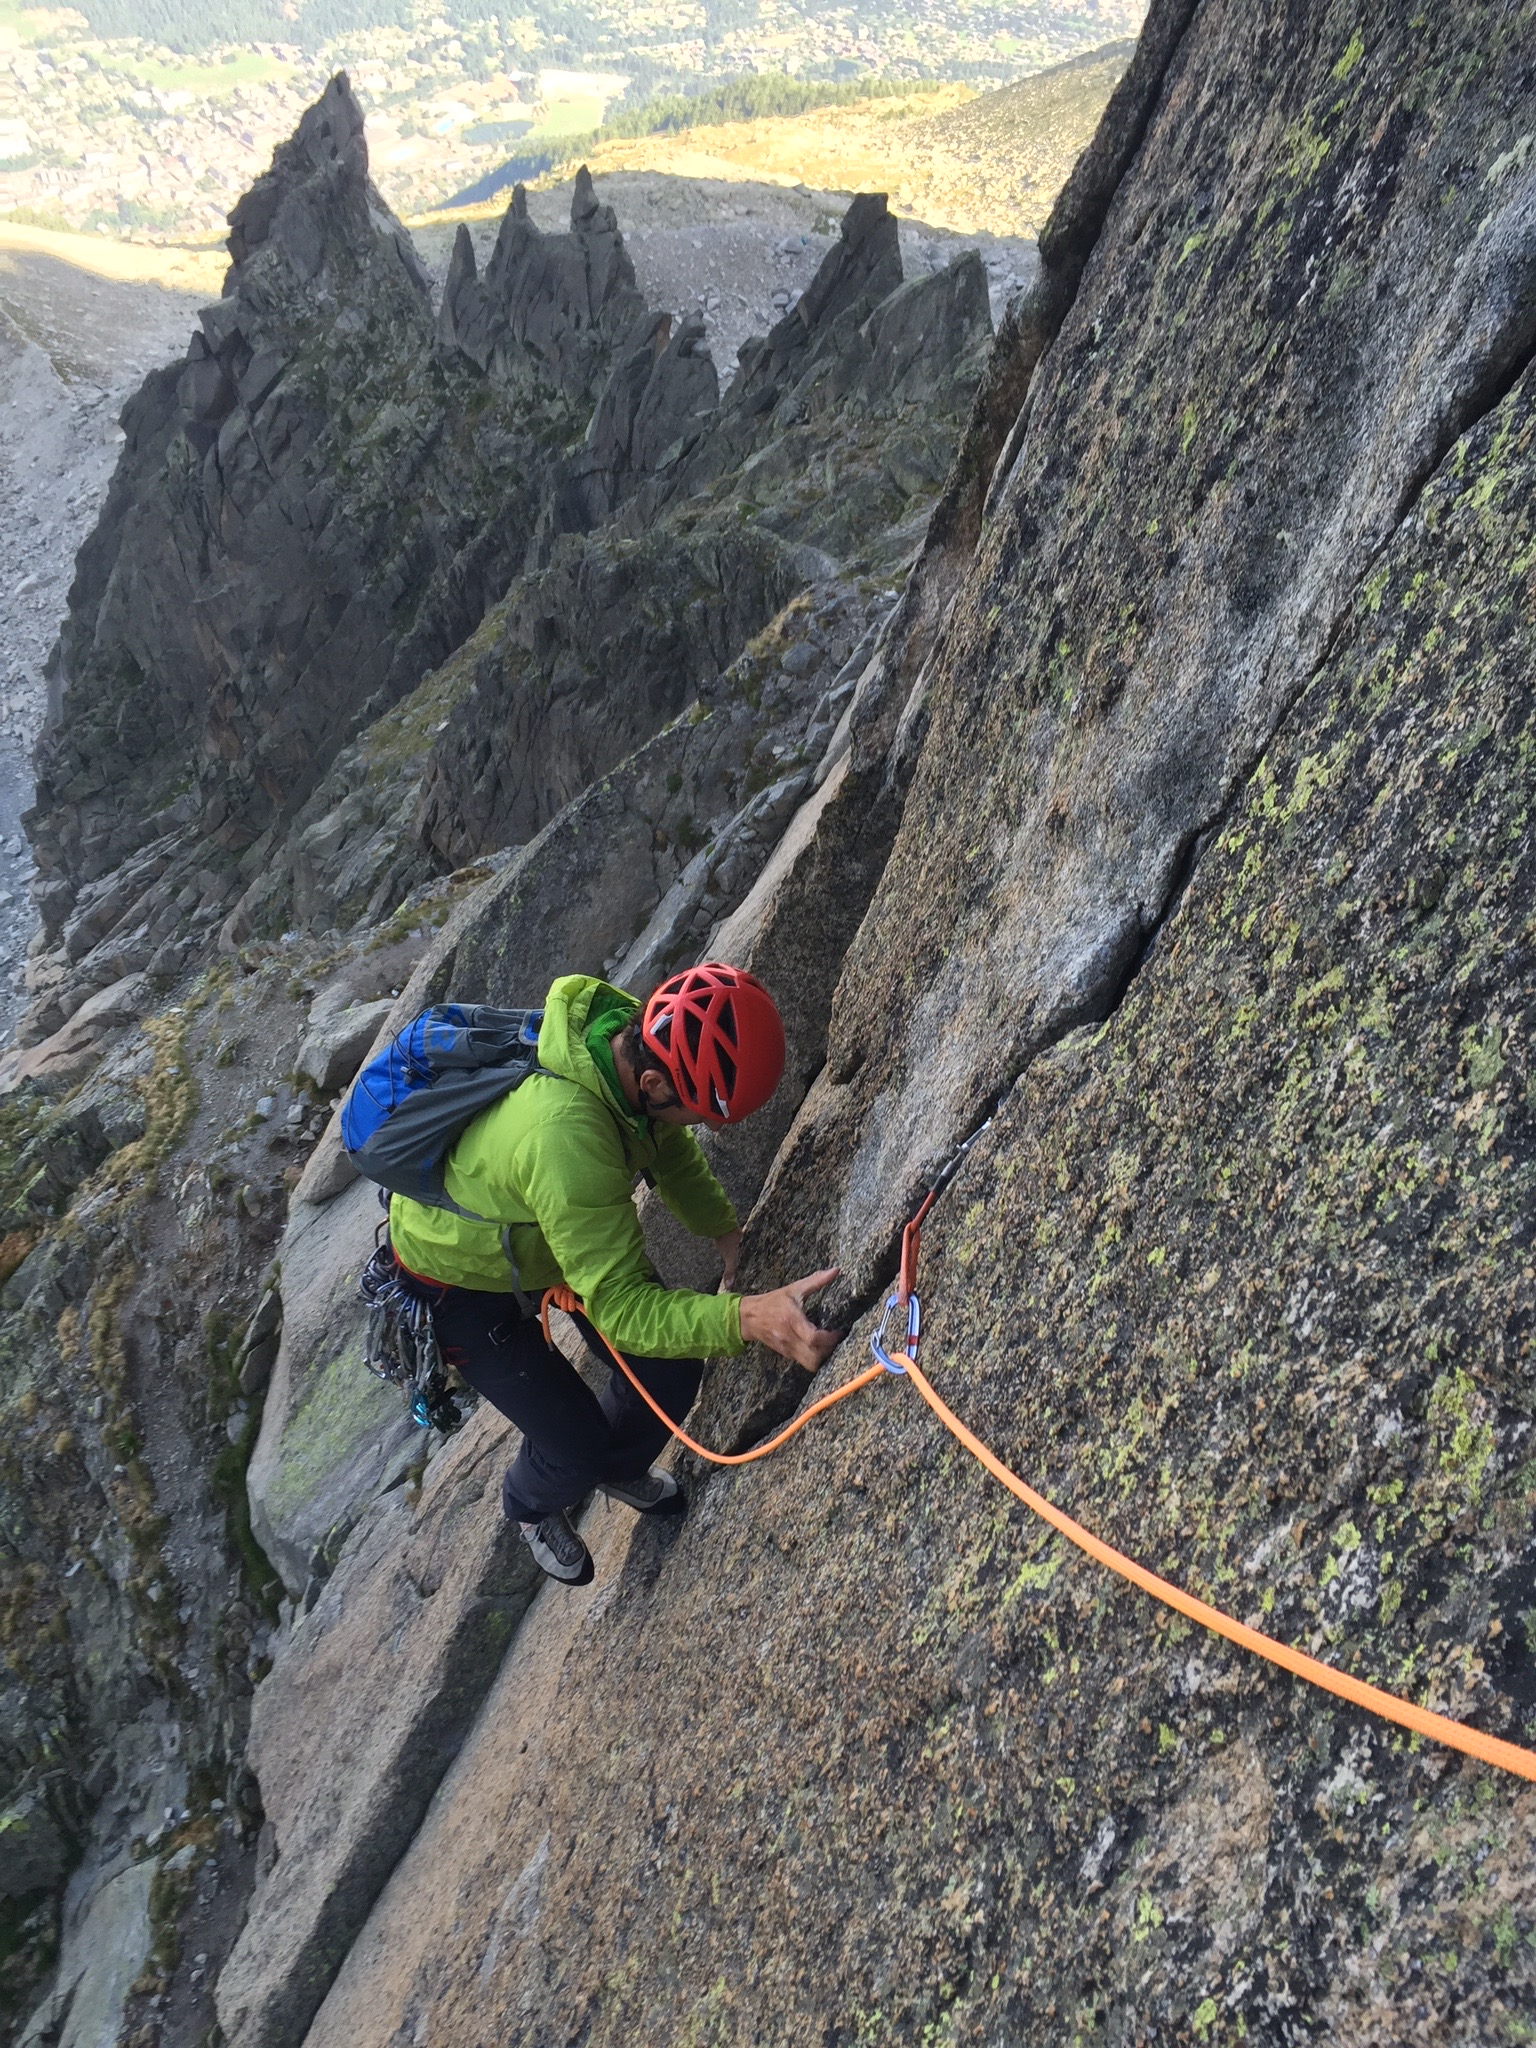 Granite crack climbing above the Chamonix Valley in France